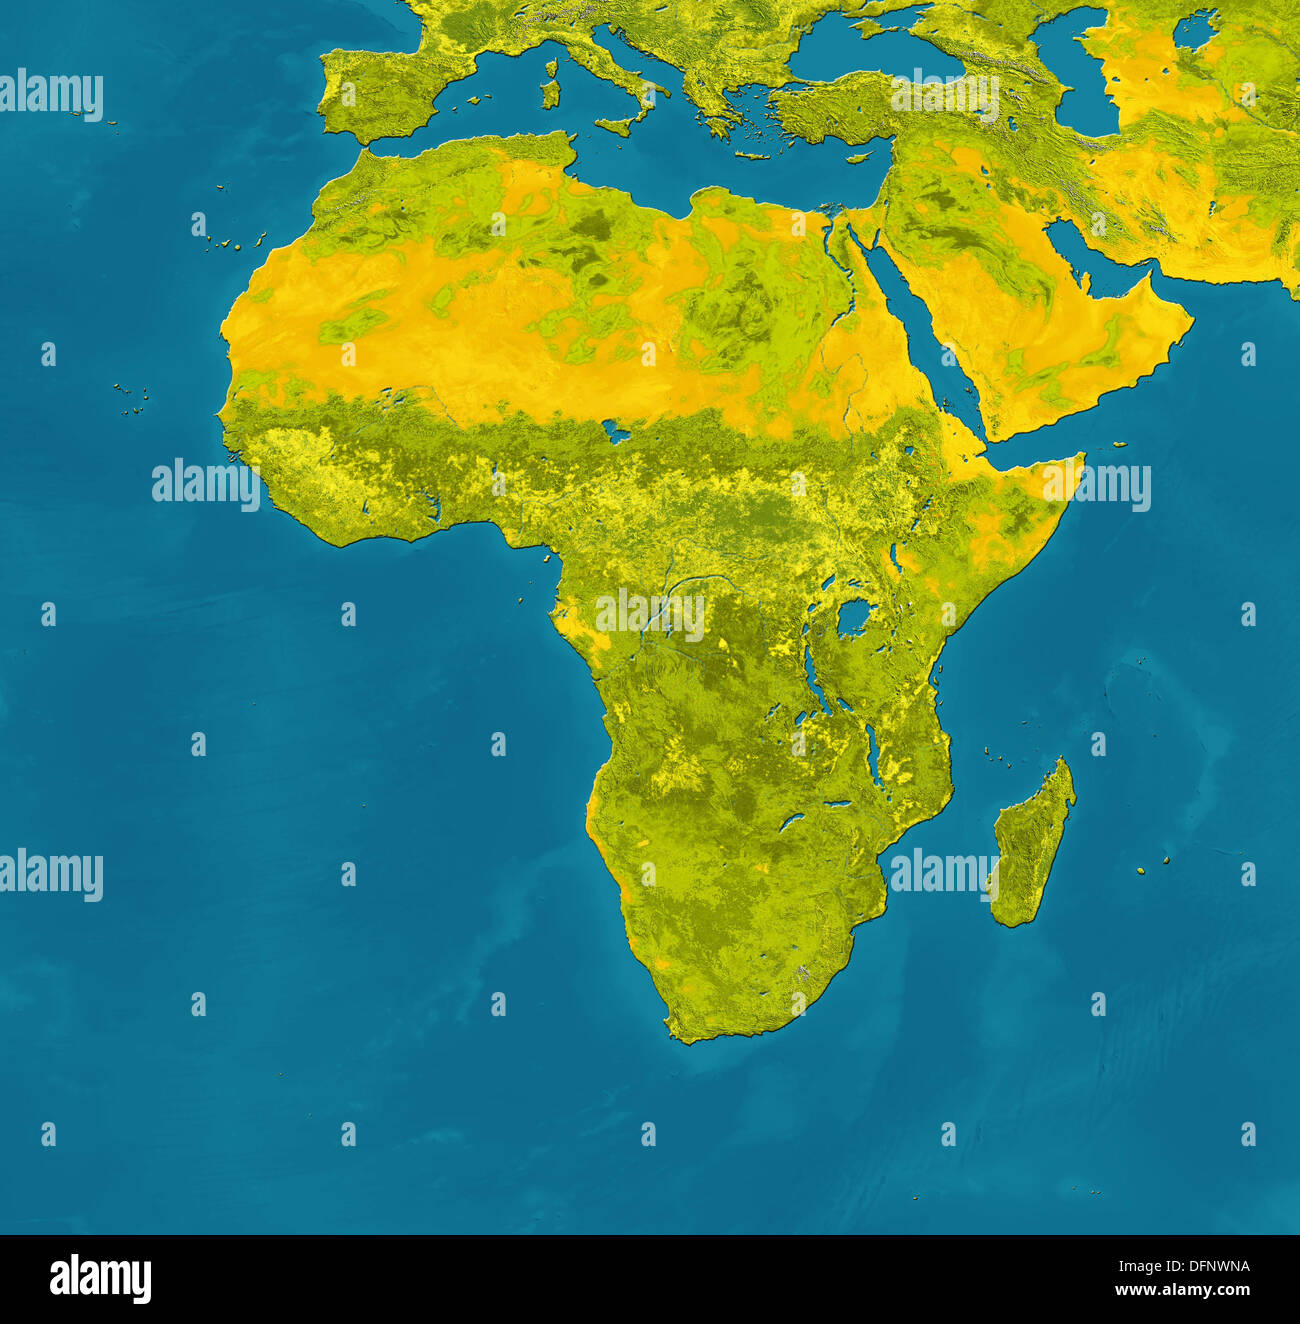 Satellite View Africa Map Stock Photos Satellite View Africa Map